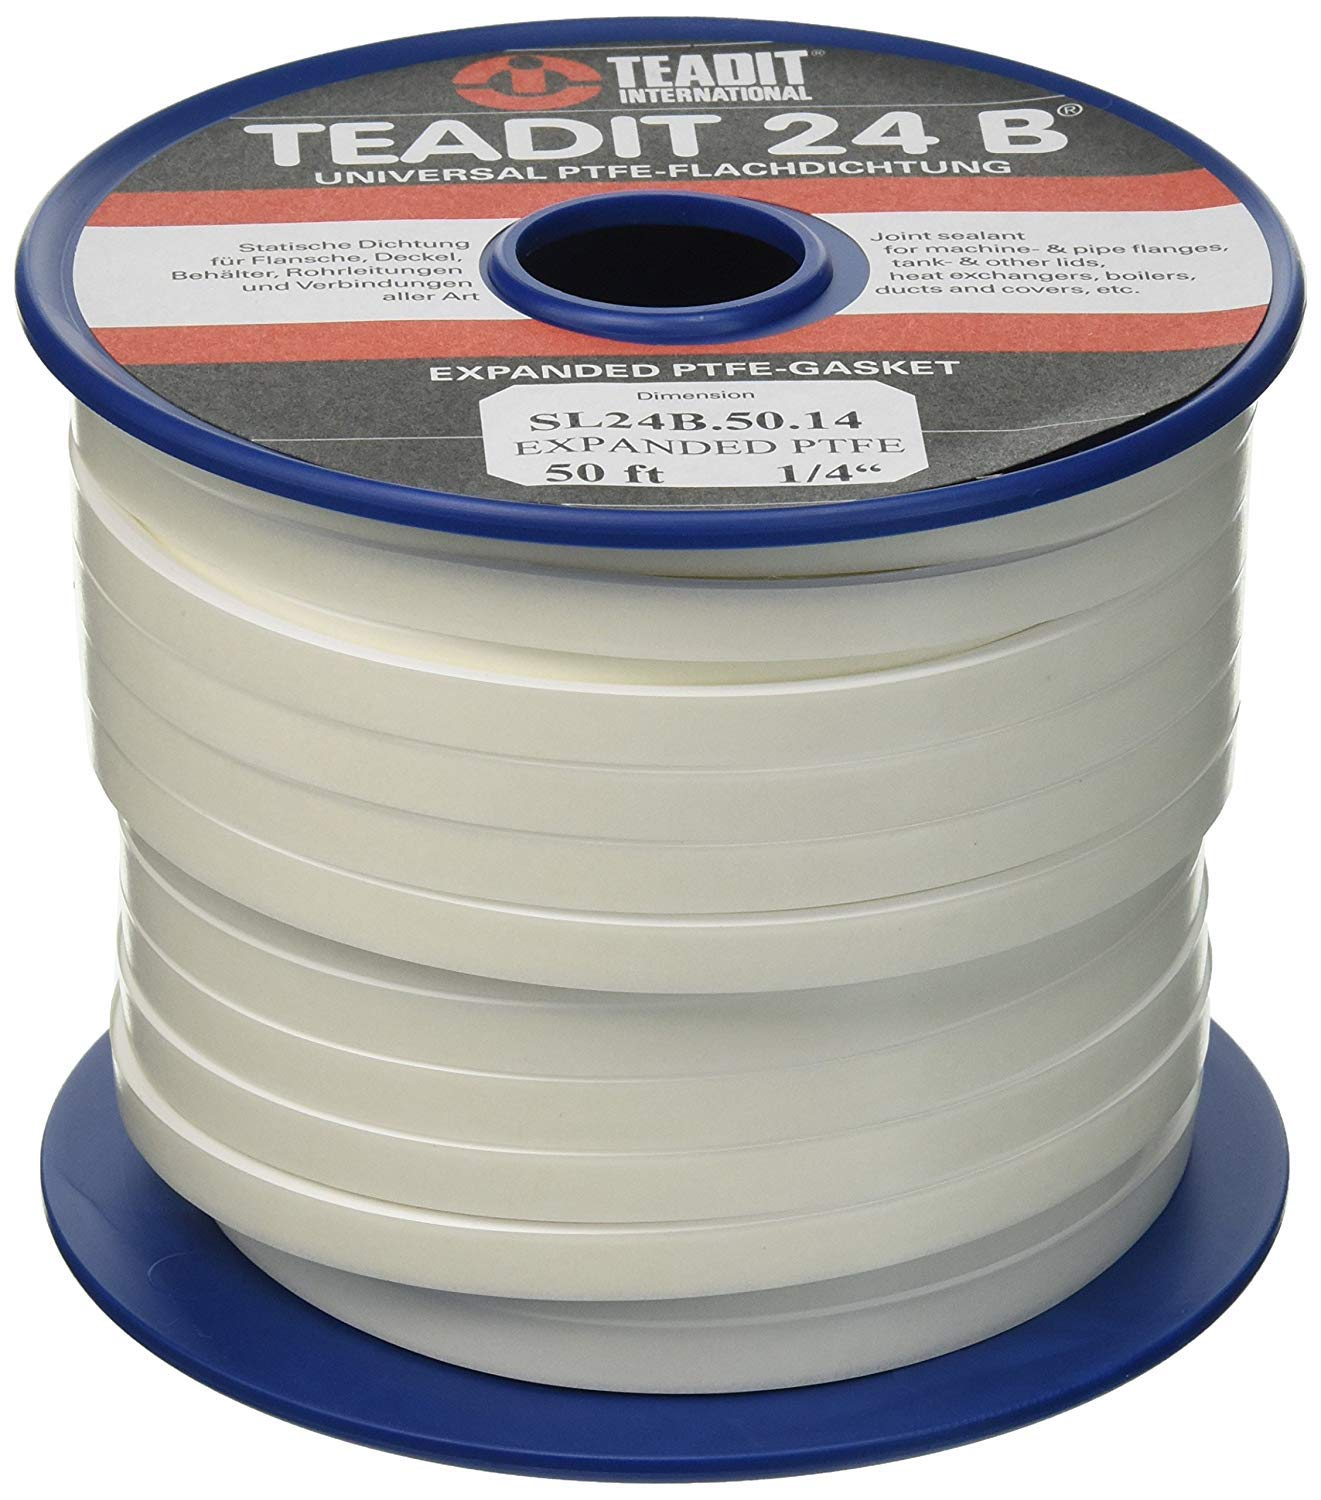 Sterling Seal and Supply (STCC)  1500.25050 1500/Teadit 24B White PTFE Joint Sealant for Applications in Steel, Glass Lined, PVC and Fiber Glass Pipe Flanges, Fume Ducts, Concrete Lids, Heat Exchangers, 1/4'' Wide, 50' by Sterling Seal & Supply, Inc. (STCC) (Image #7)